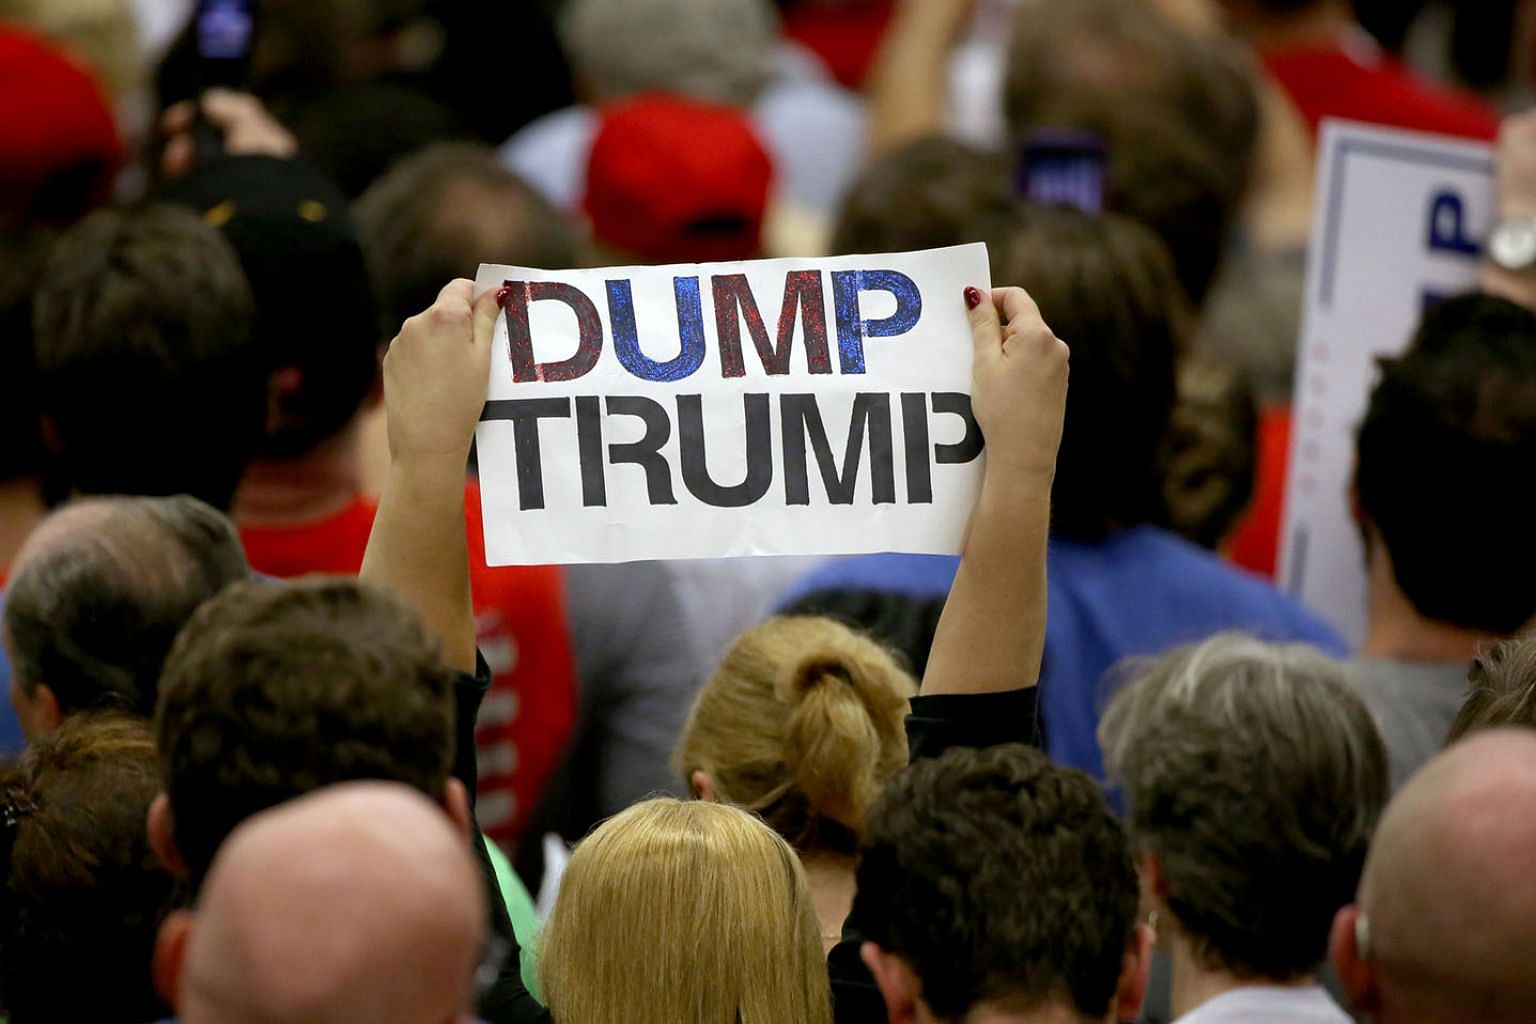 A protester with an anti-Trump sign at a campaign event for Mr Trump in Fairfield, Connecticut in the US. Every poll released since the Republican and Democratic parties held their conventions in July shows a growing gap between Mr Trump and Democratic Pa